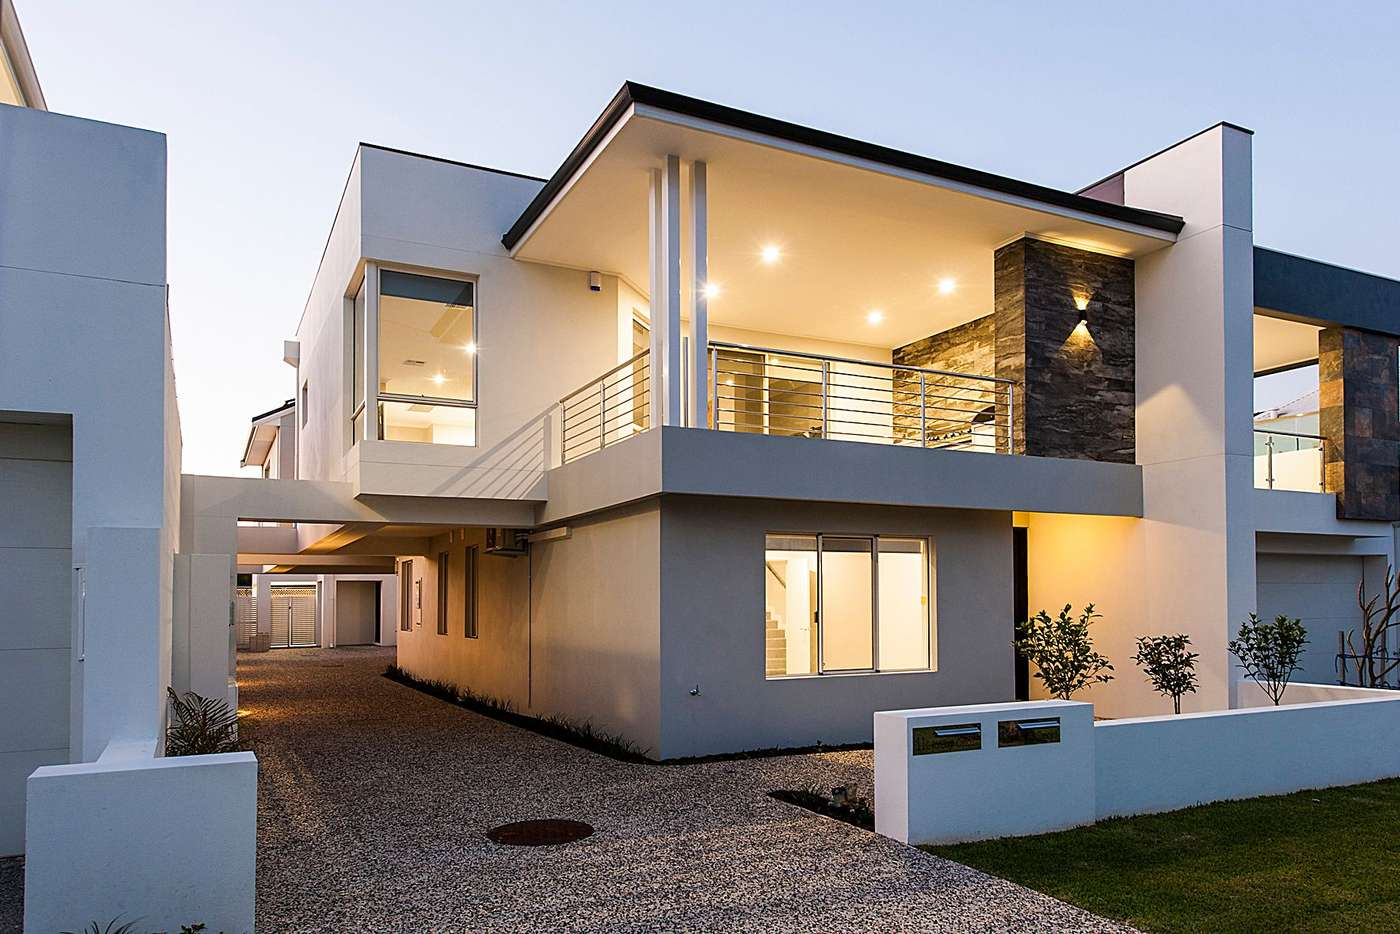 Main view of Homely townhouse listing, 11A Ranelagh Crescent, South Perth WA 6151